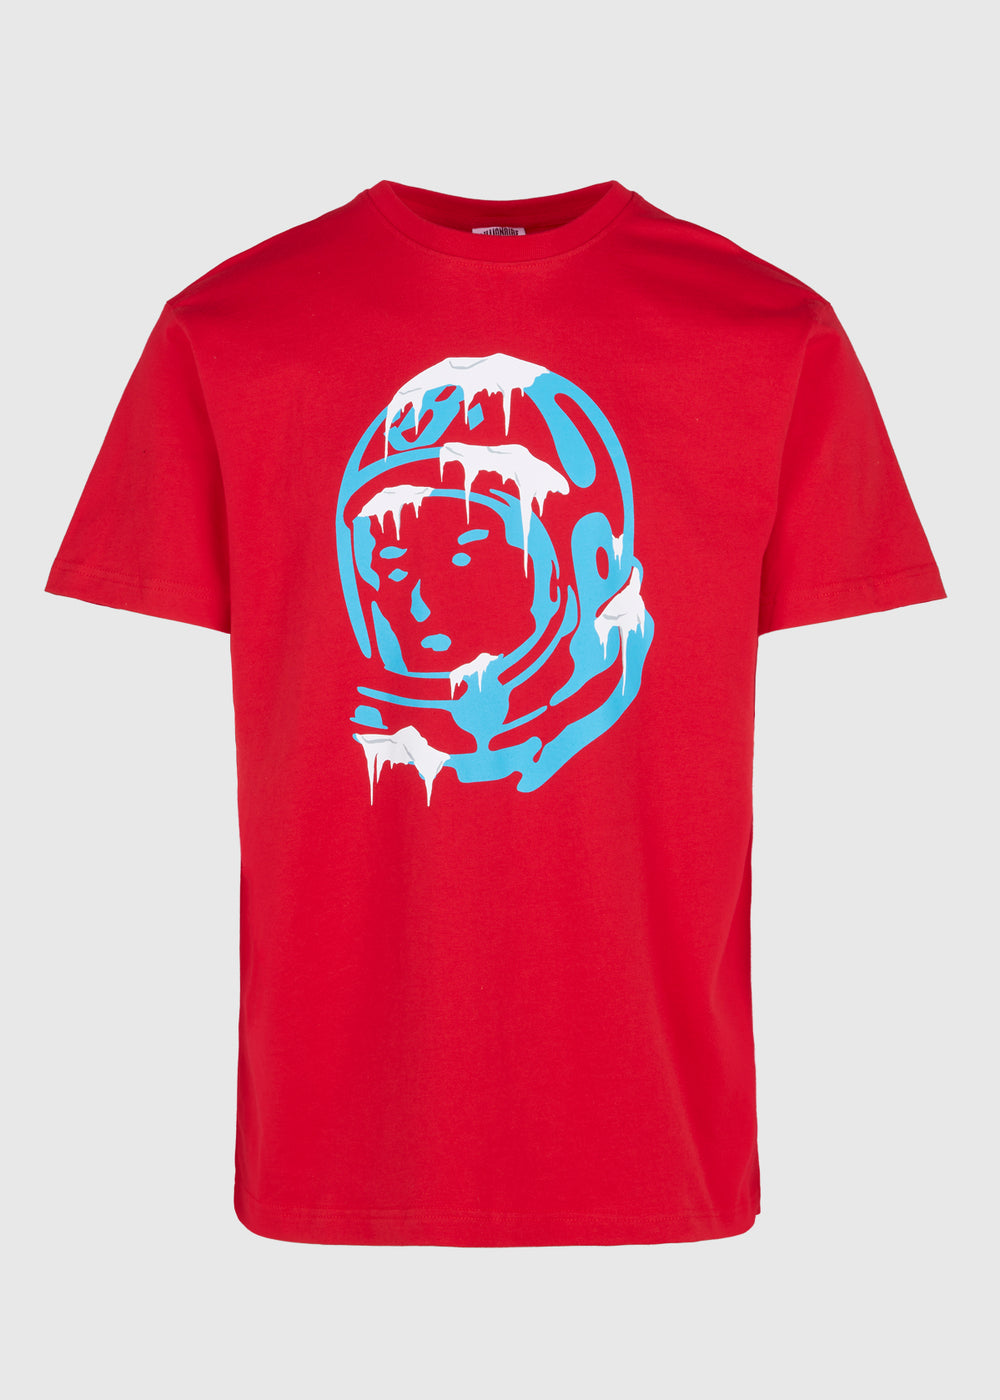 billionaire-boys-club-bbc-av-hlmt-tee-891-8208-red-red-1